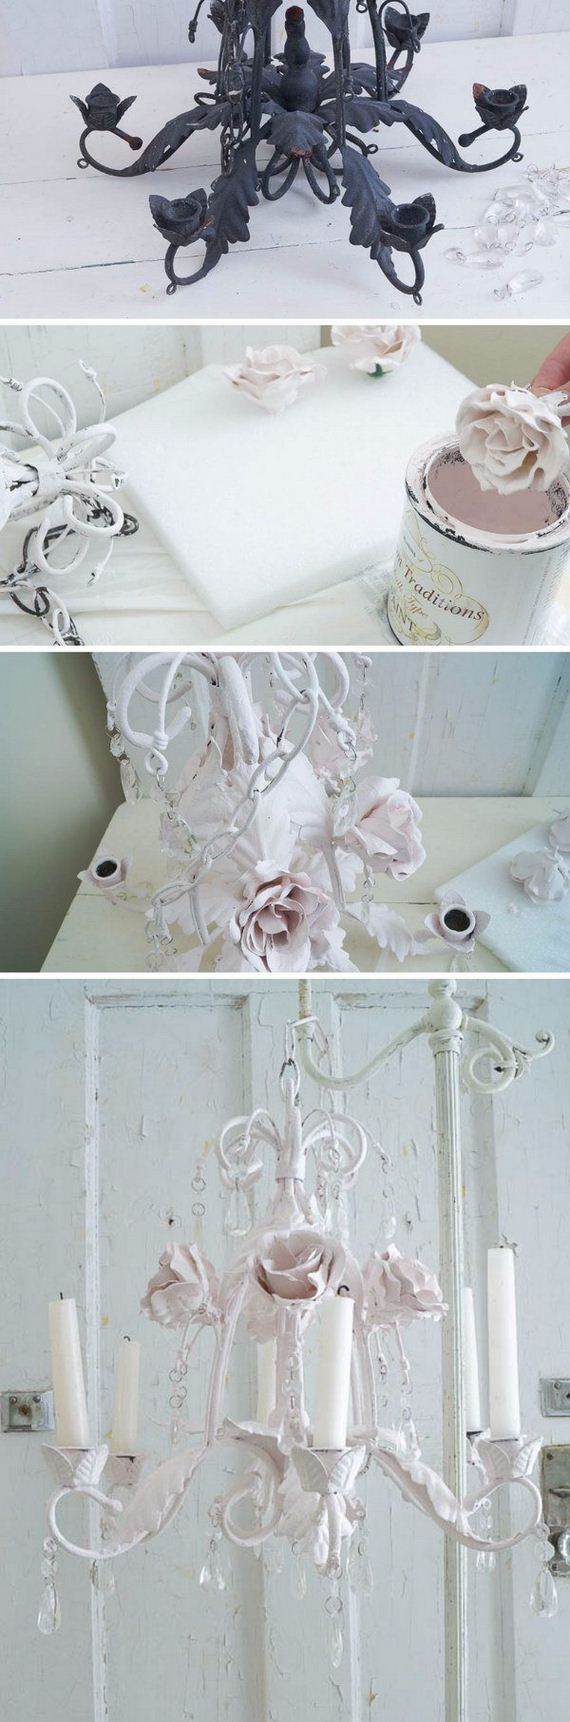 25-romantic-shabby-chic-diy